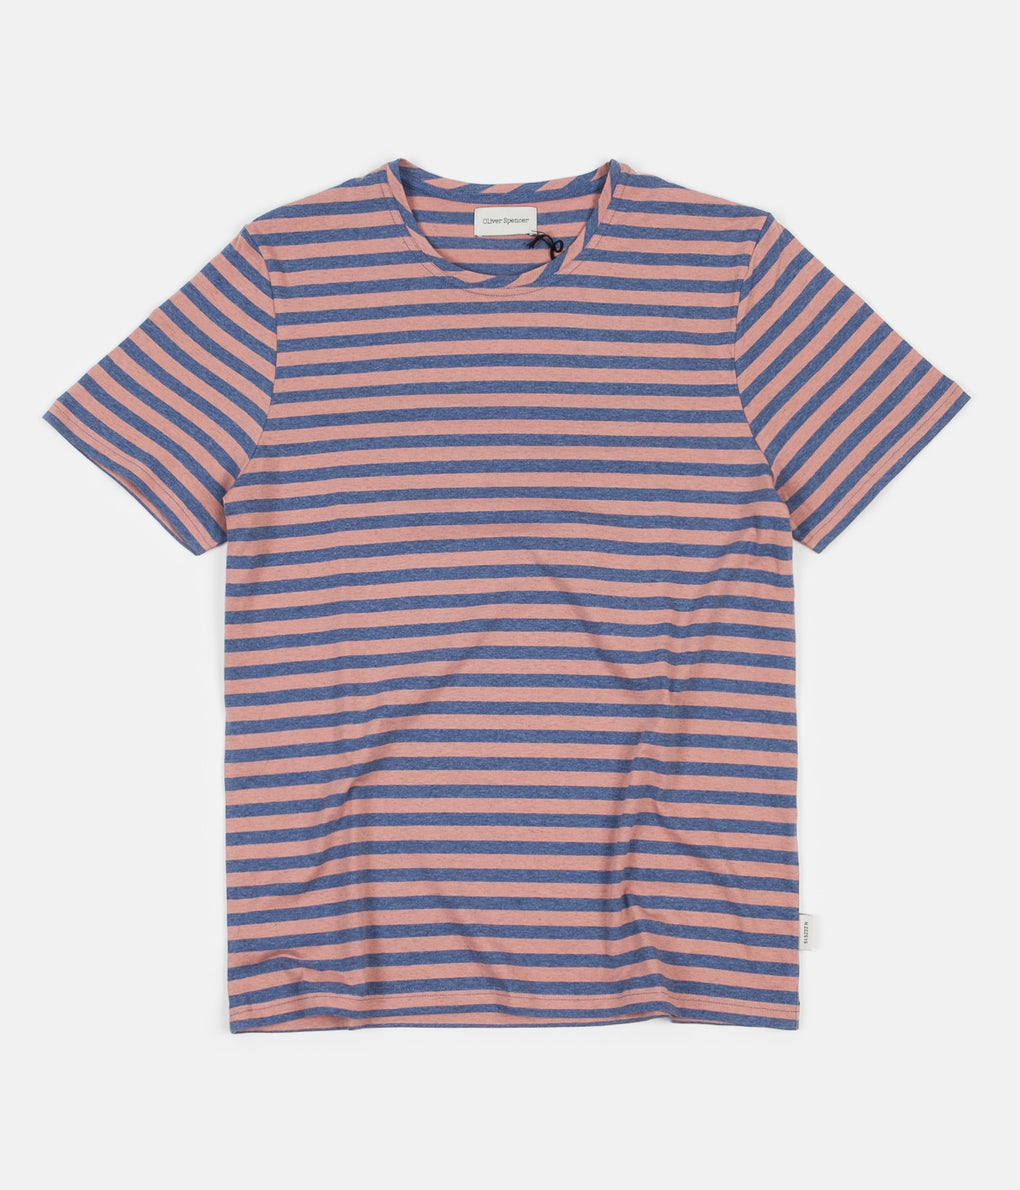 Oliver Spencer Conduit T-Shirt - Capri Pink / Sky Blue